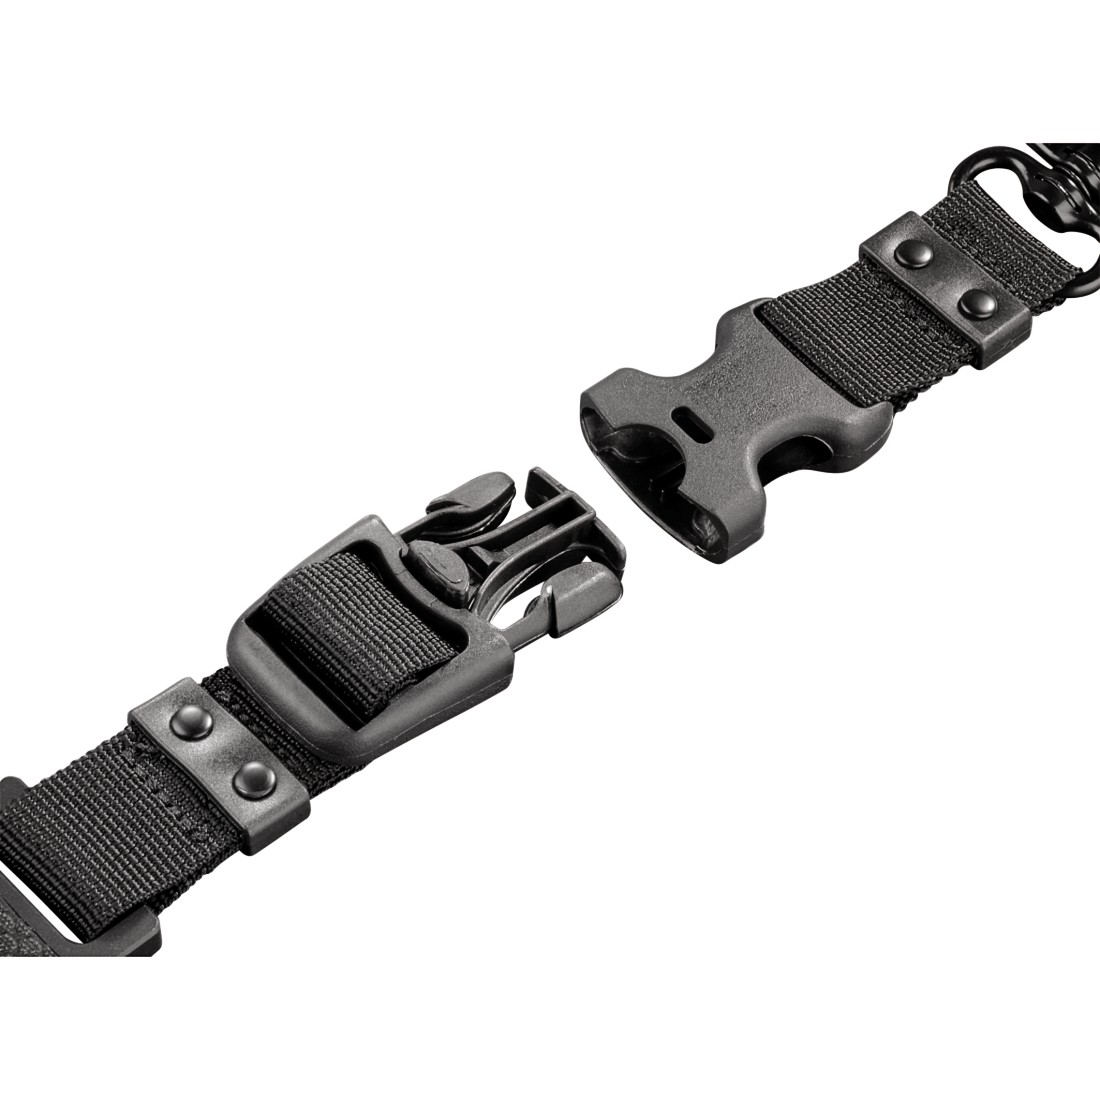 "dex6 High-Res Detail 6 - Hama, ""Quick Shoot Strap"" Carrying Strap for SLR Cameras"